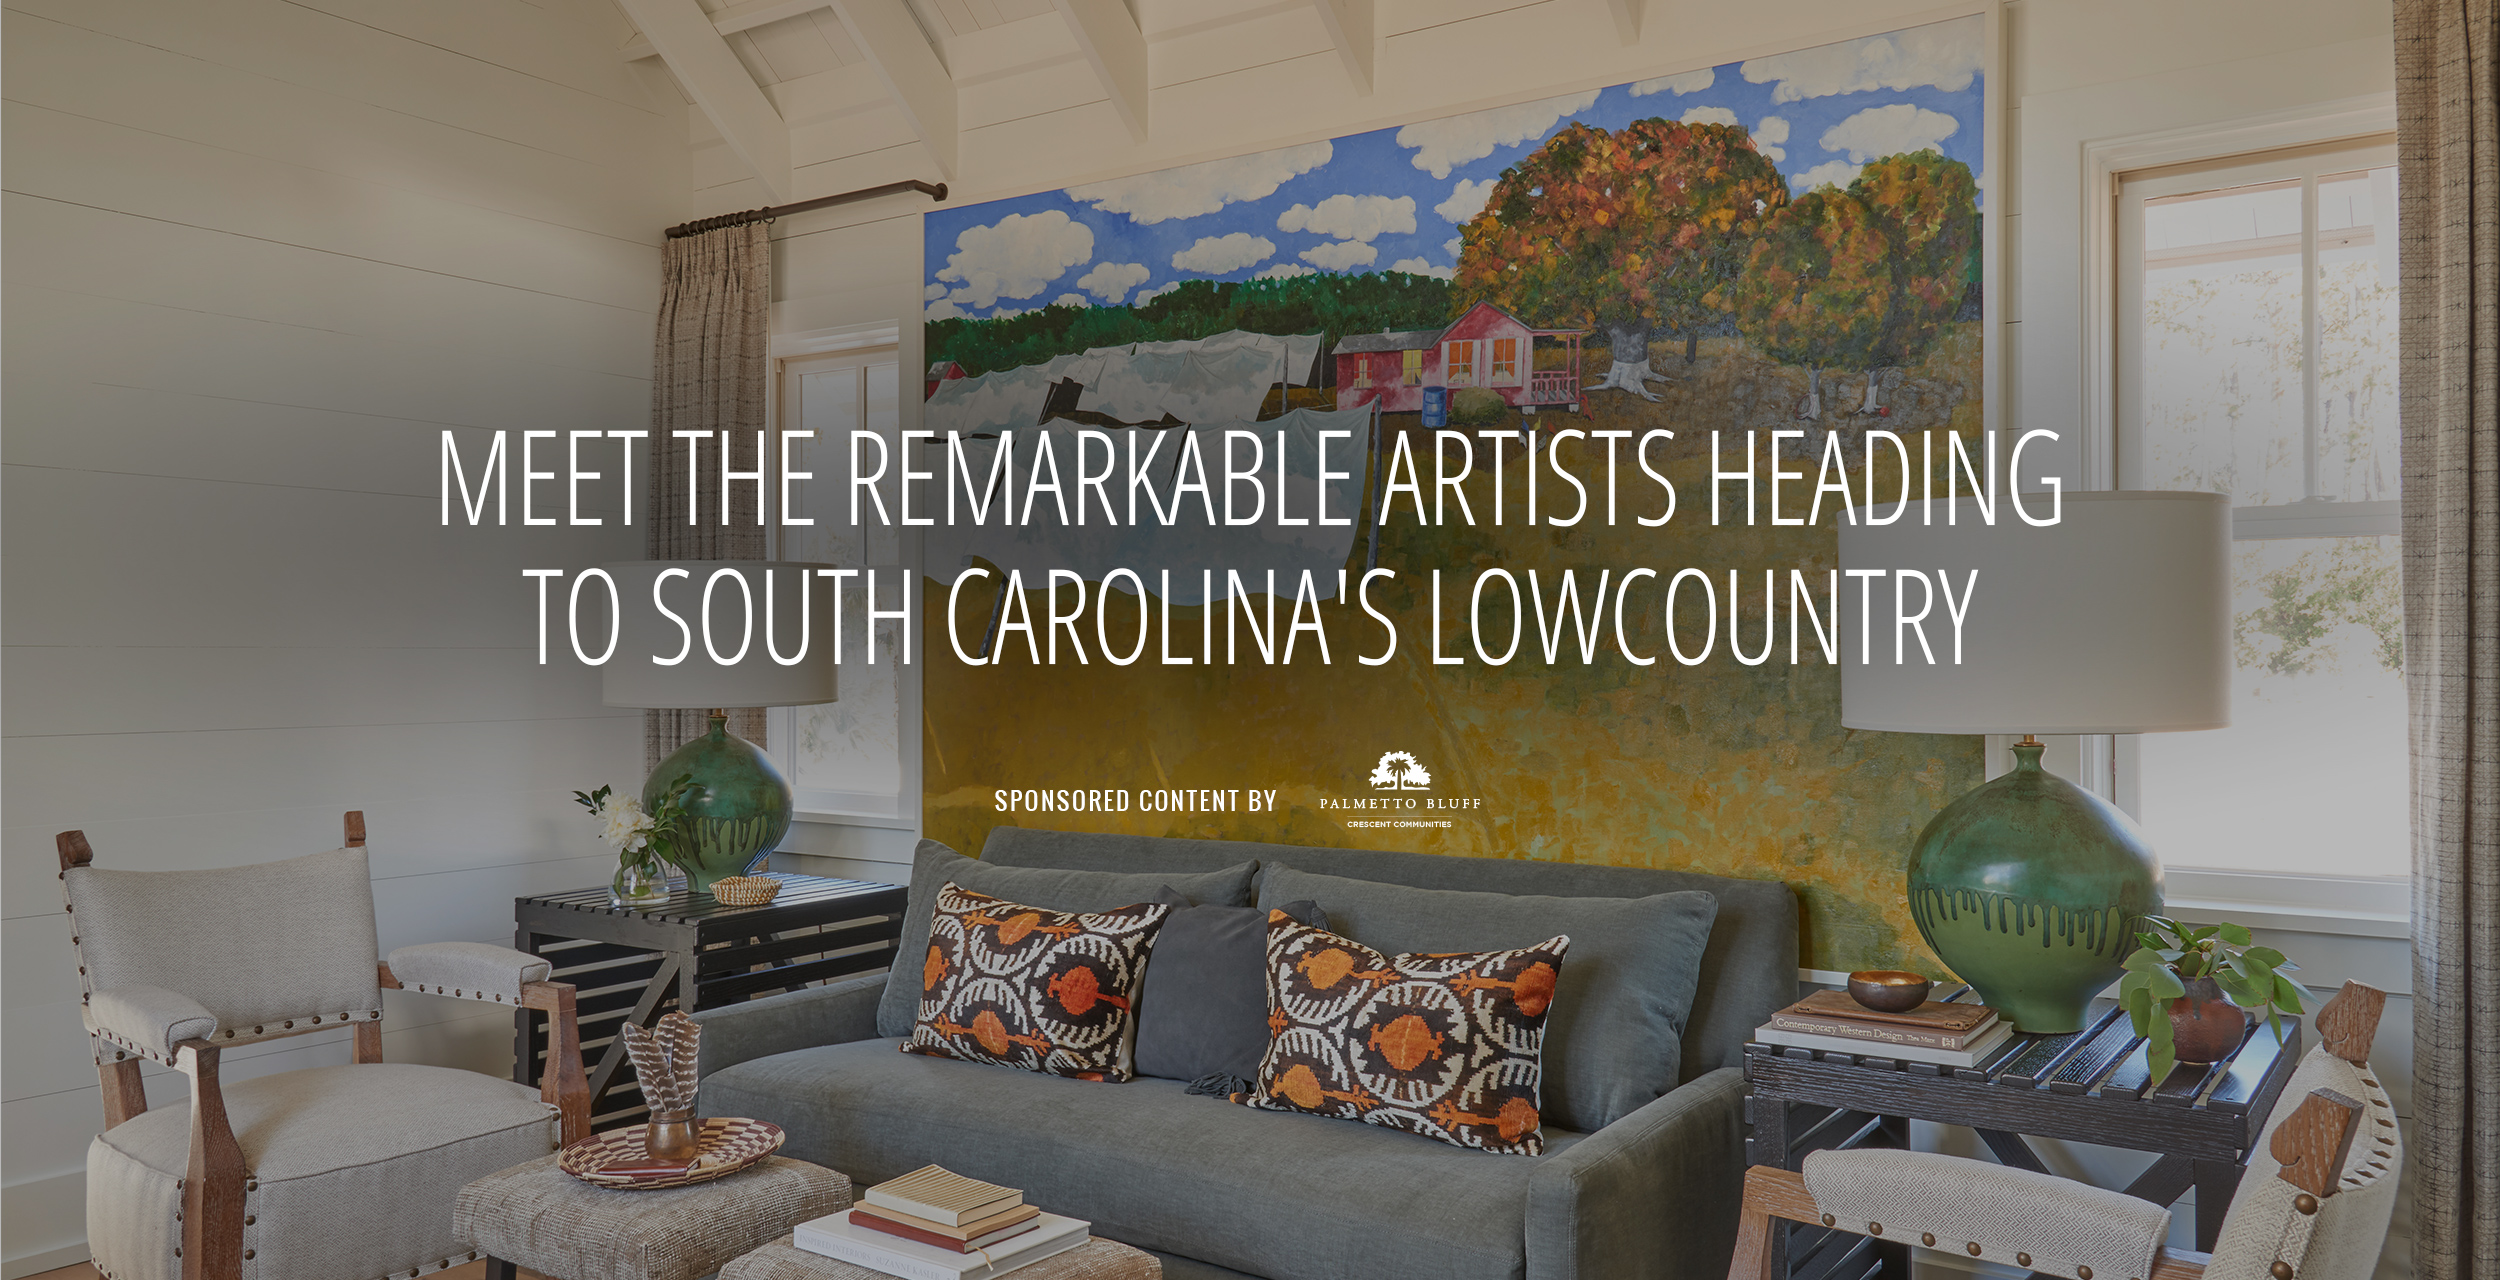 Meet the Remarkable Artists Heading to South Carolina s Lowcountry